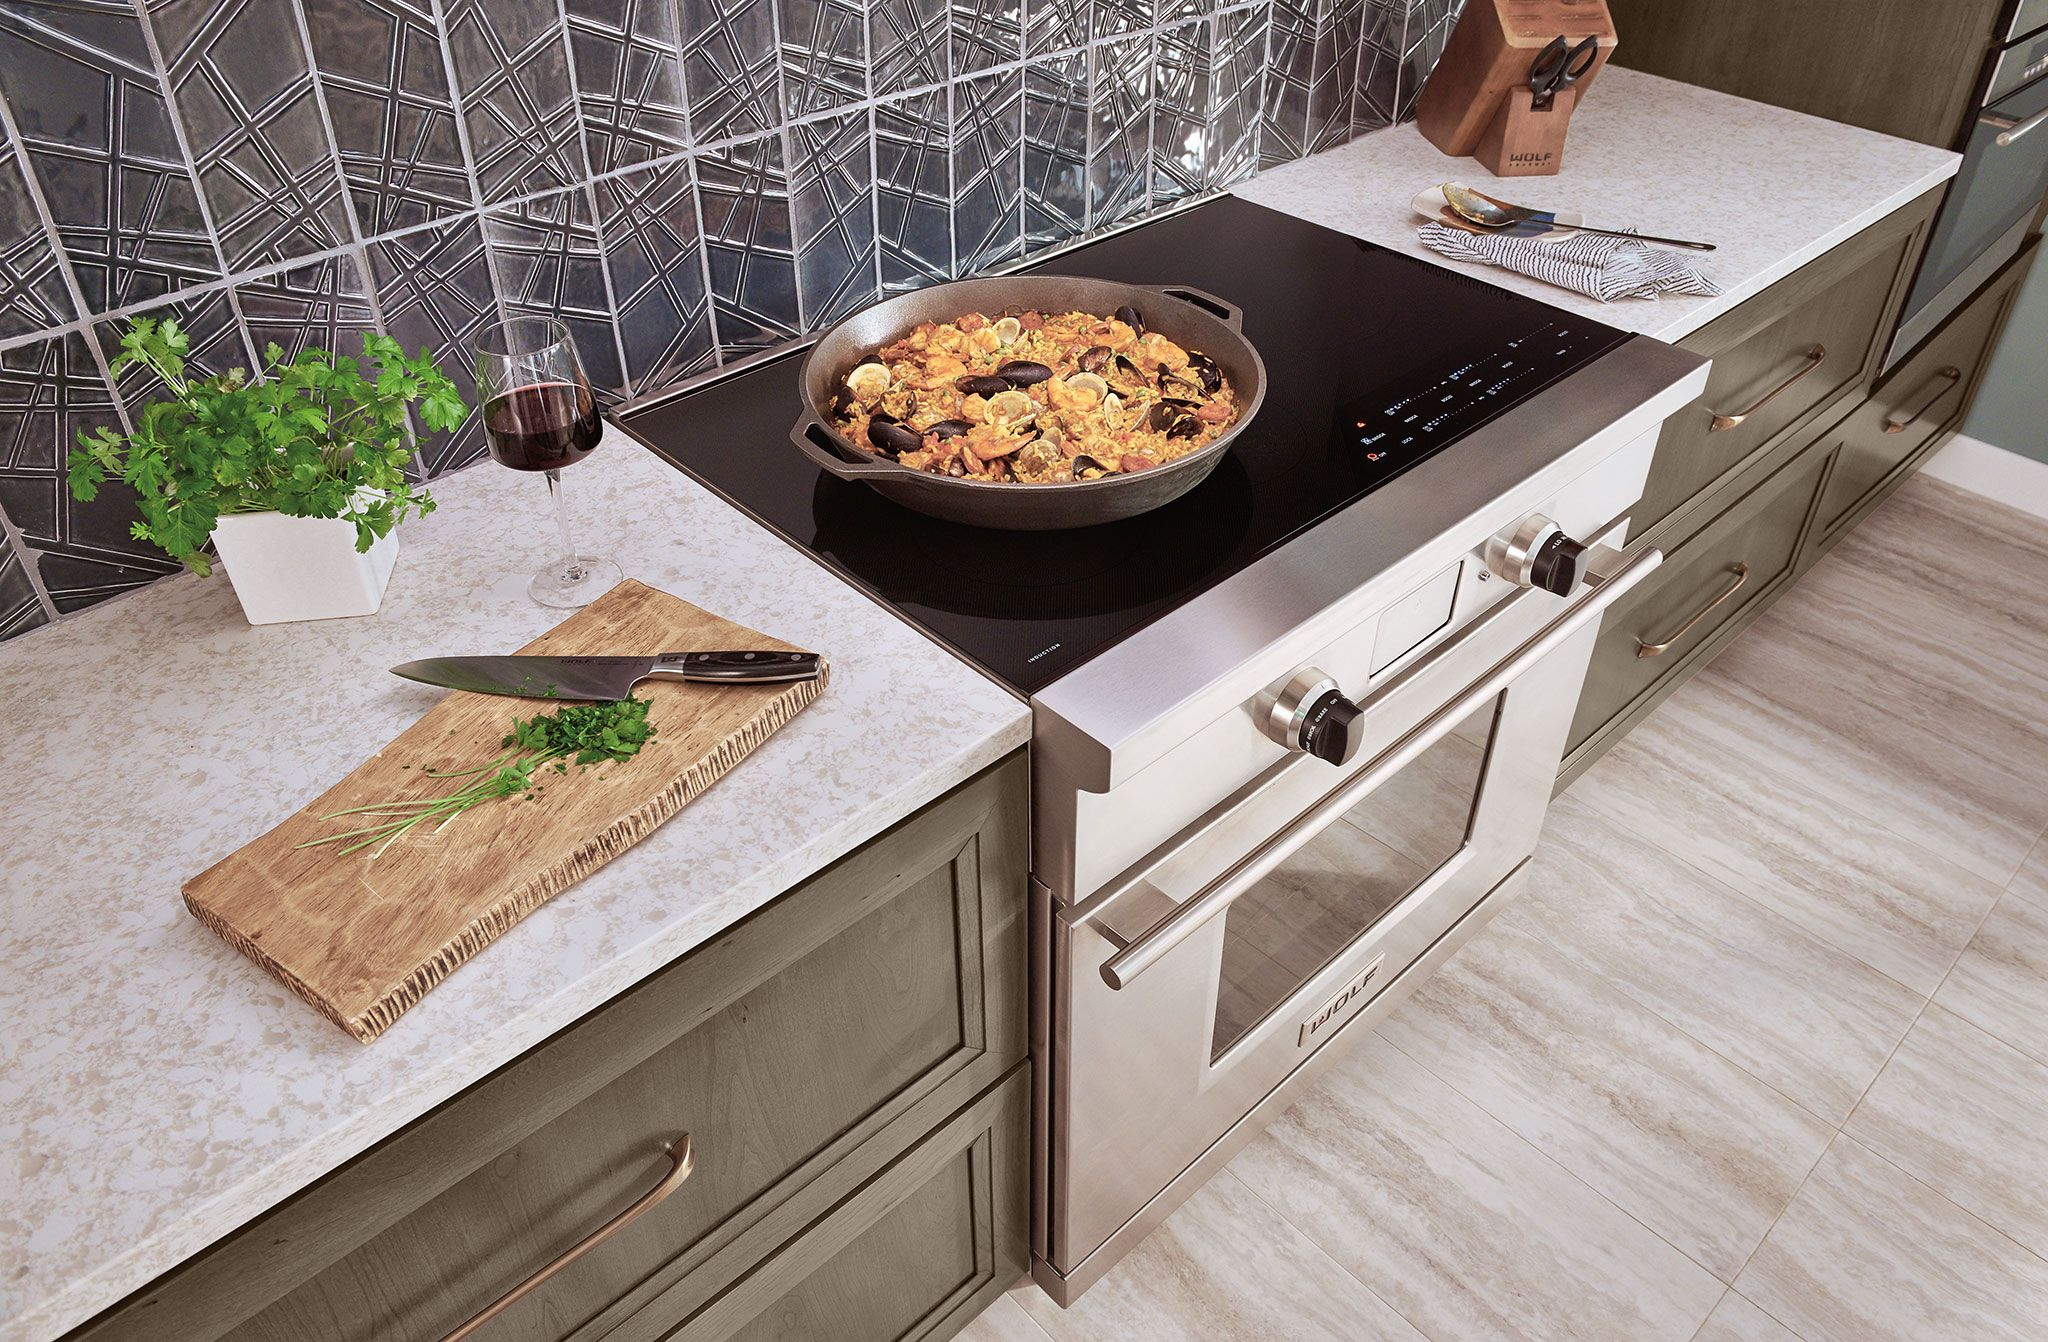 Modified Shaker Style Cabinet Maybe What We Want New Wolf 36 Inch Induction Range Induction Range Induction Cooktop Stove With Griddle